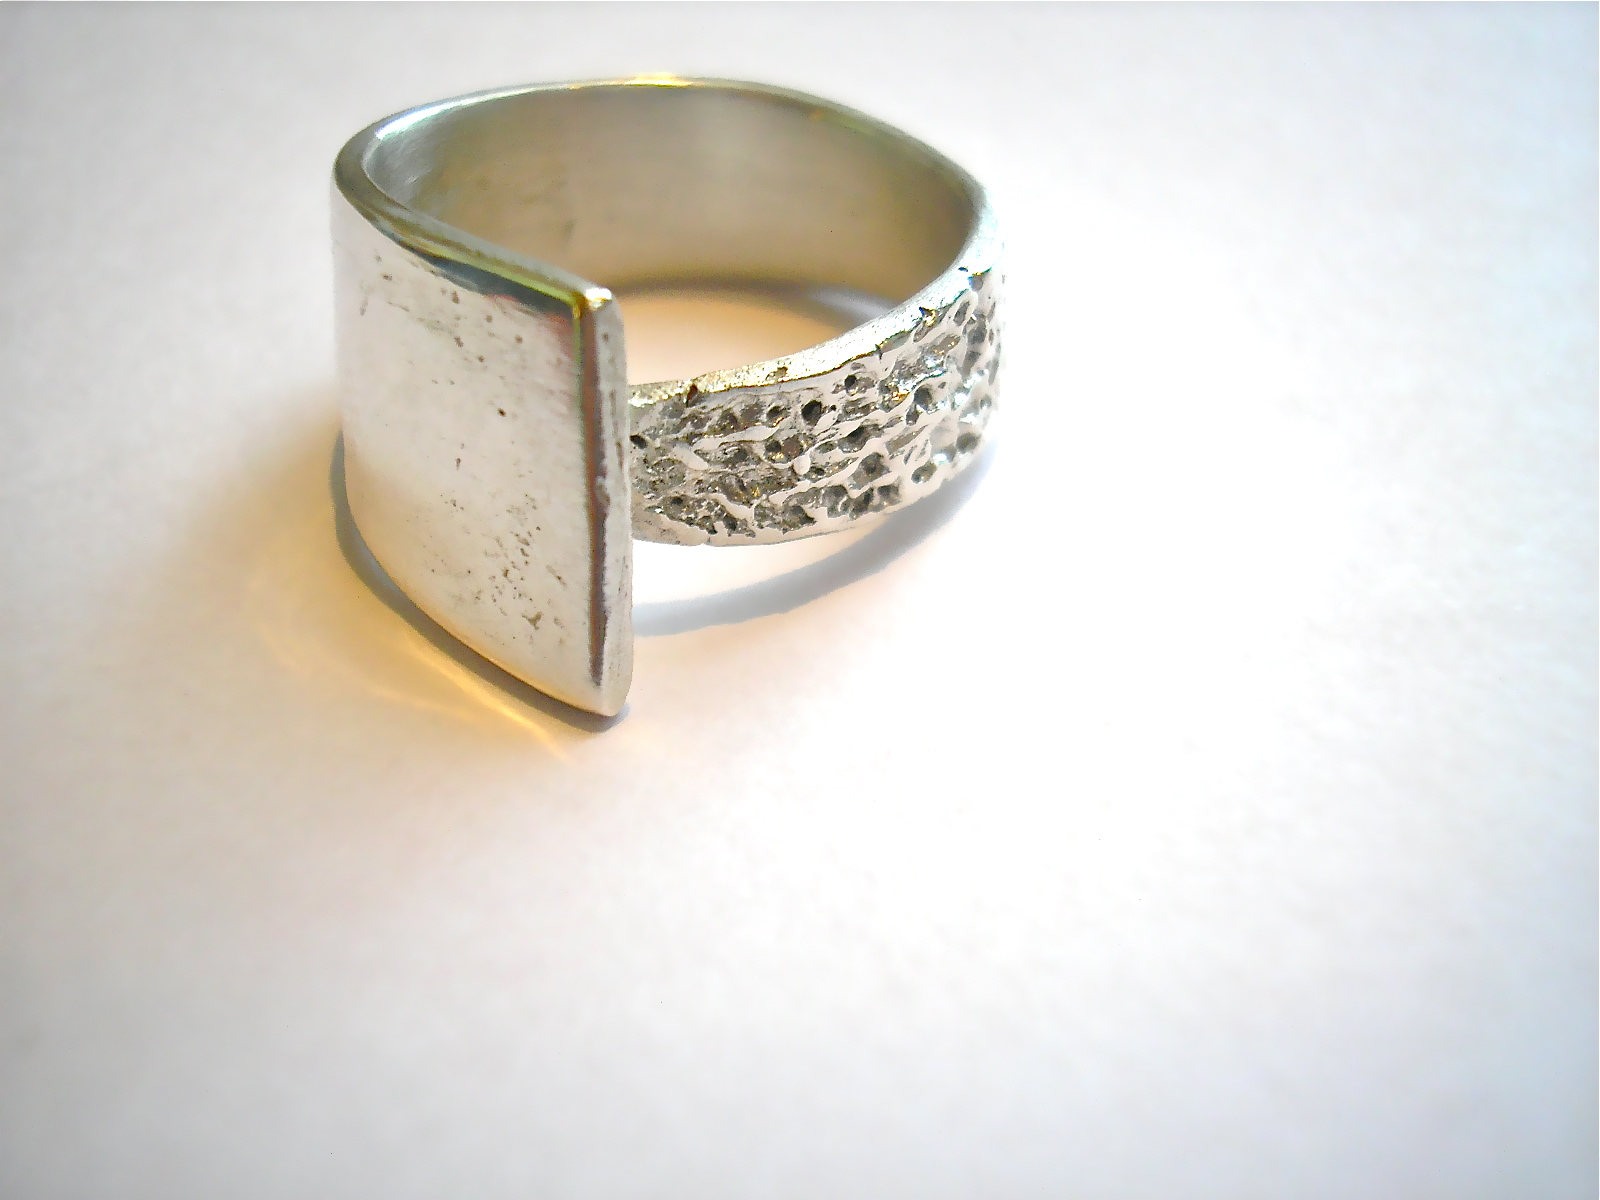 Art Clay Silver Ring